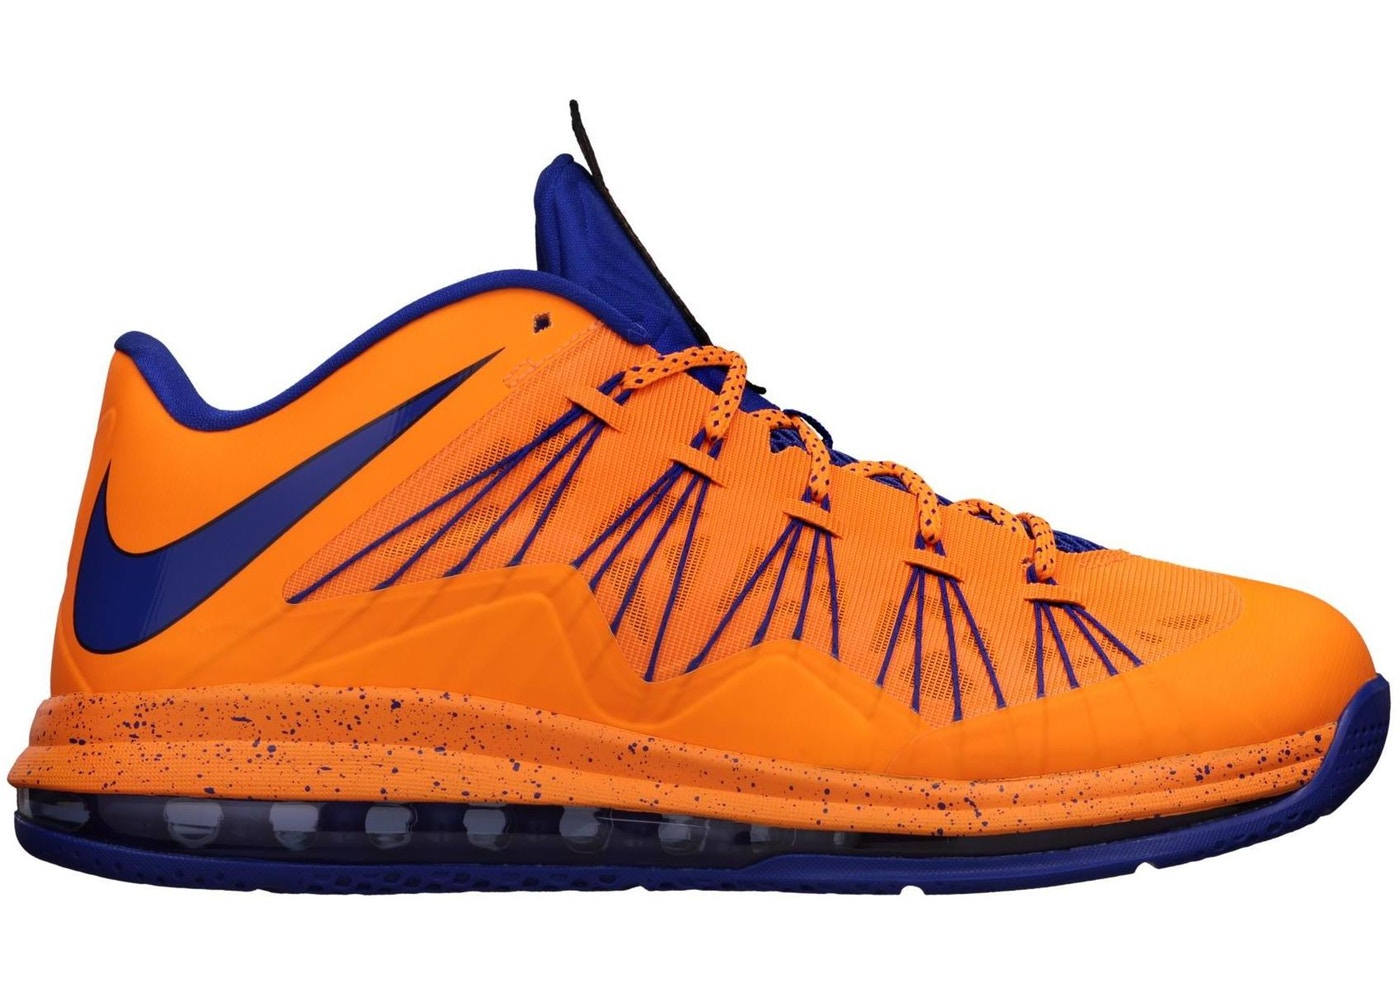 ナイキ NIKE レブロン ニックス スニーカー 【 LEBRON X LOW KNICKS HWC BRIGHT CITRUS BLACKENED BLUE WHITE HYPER 】 メンズ